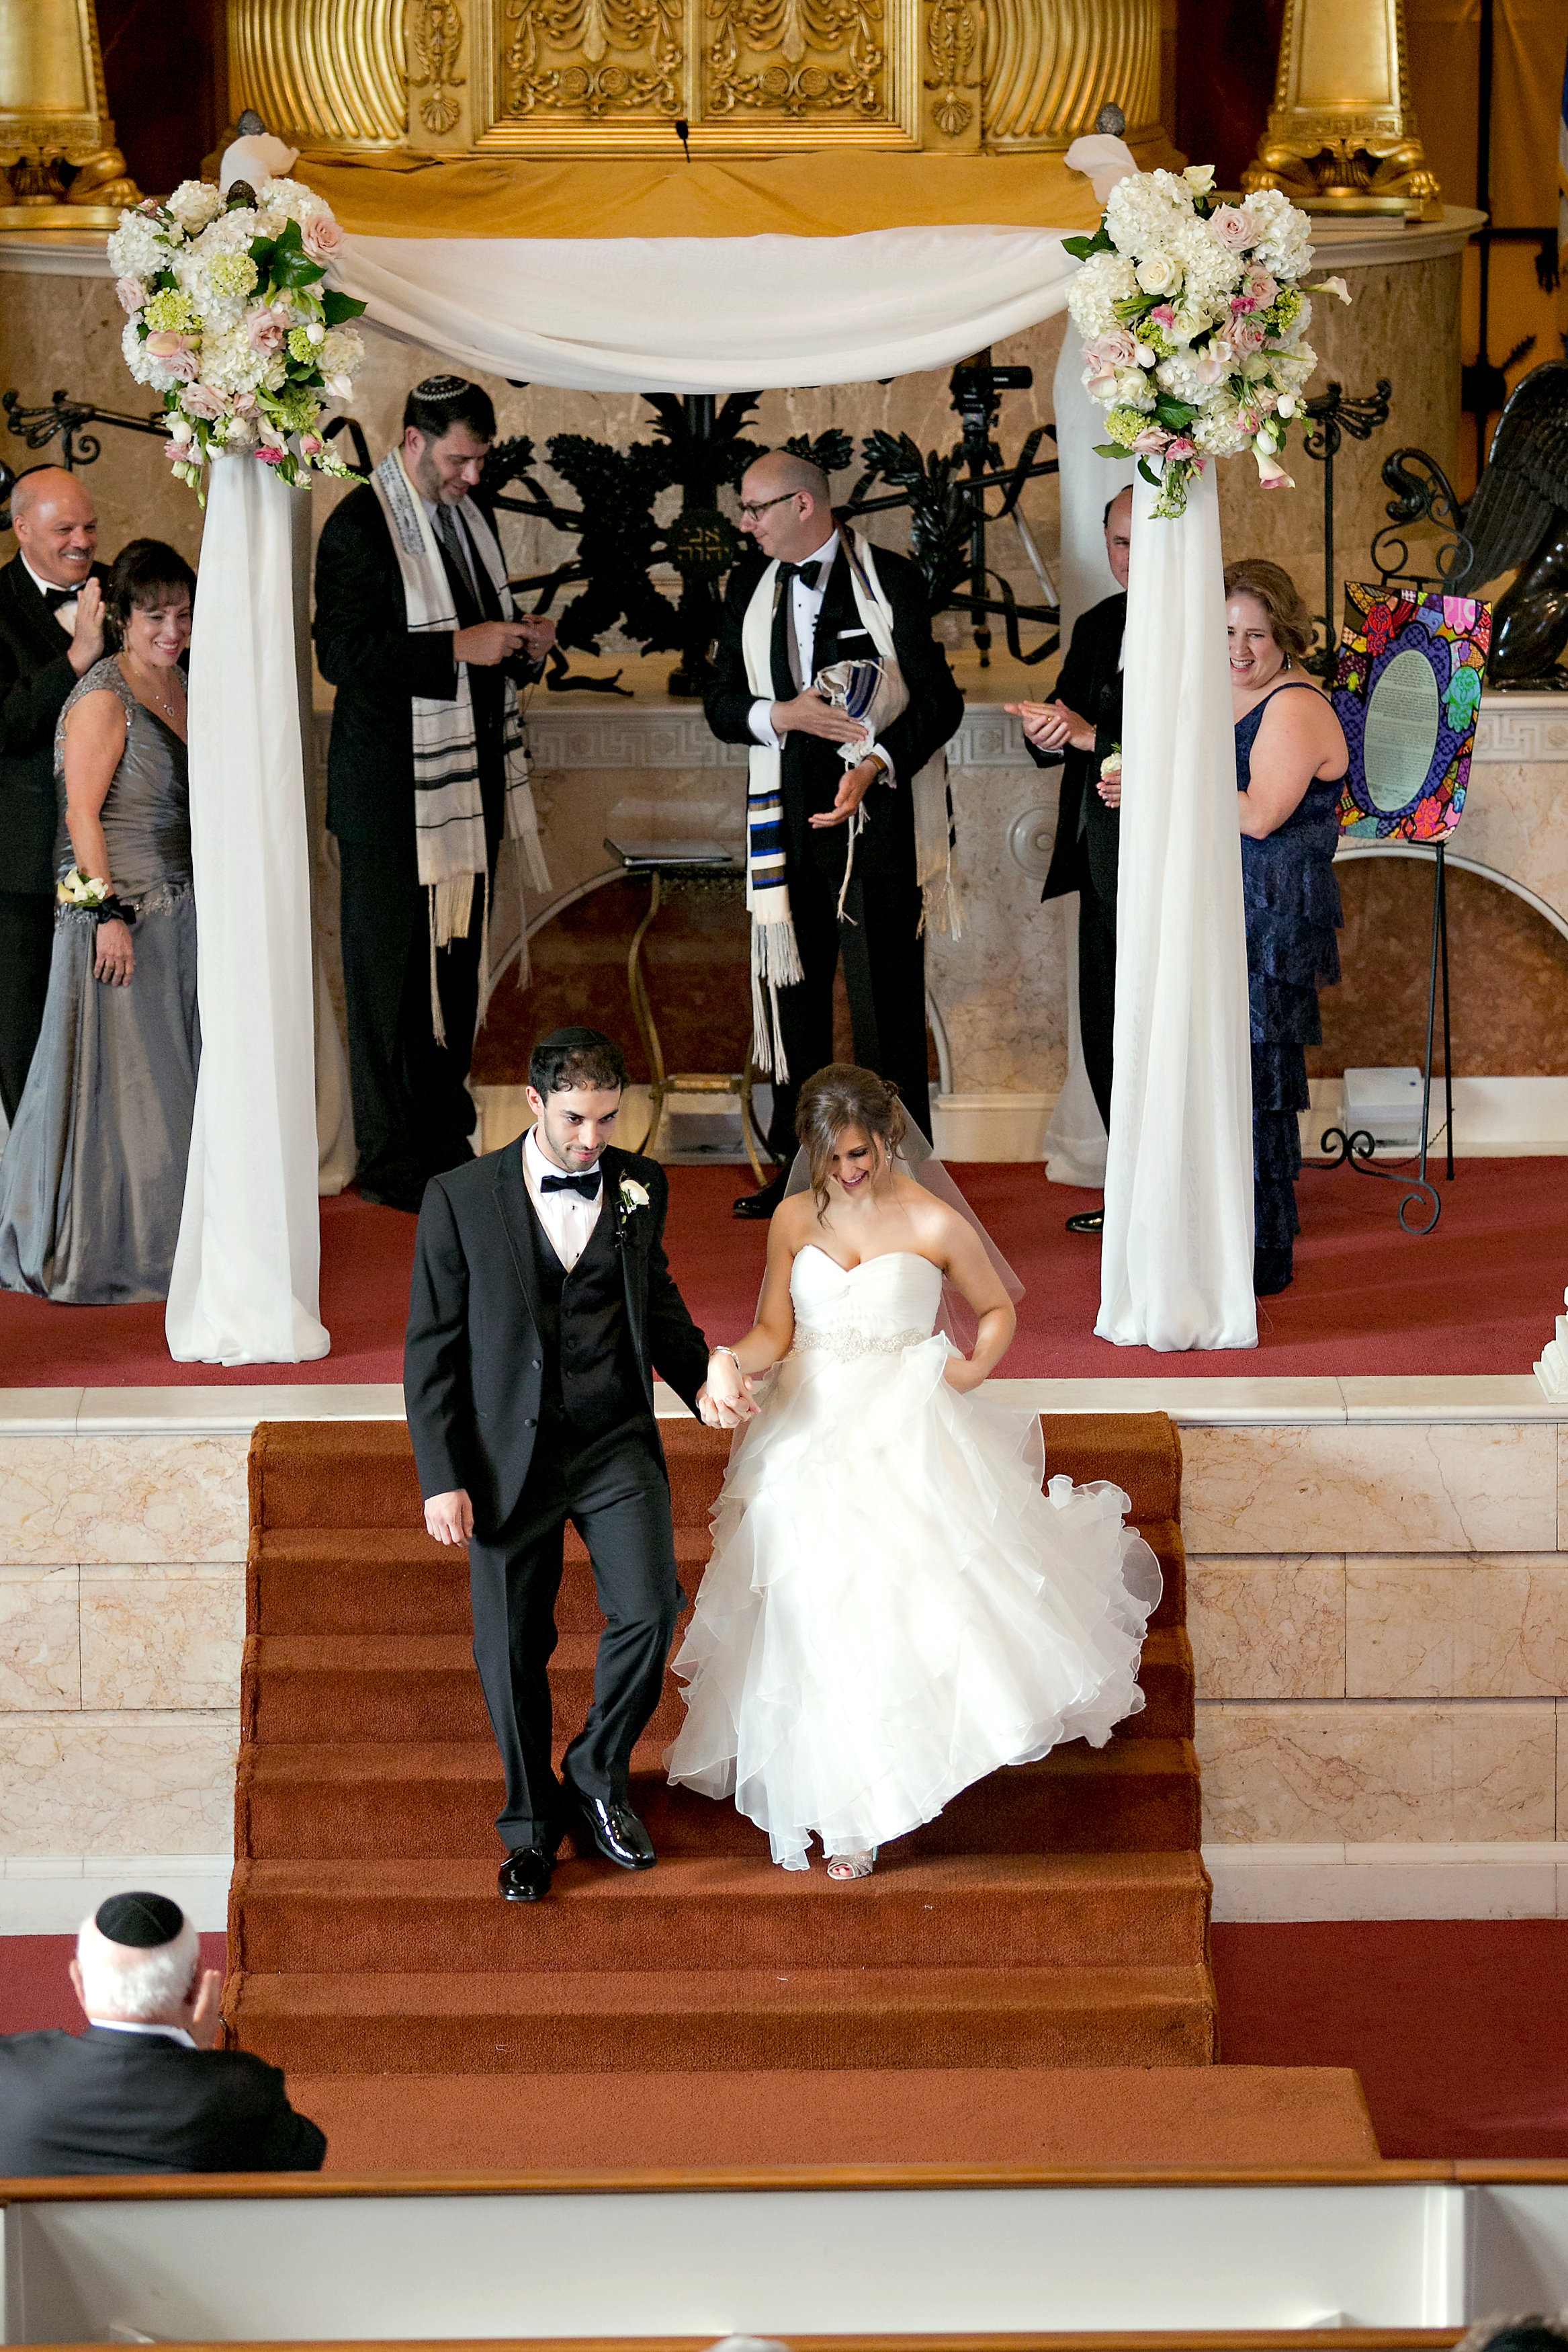 chair dance ritual song sky stand reviews the temple atlanta wedding with jewish